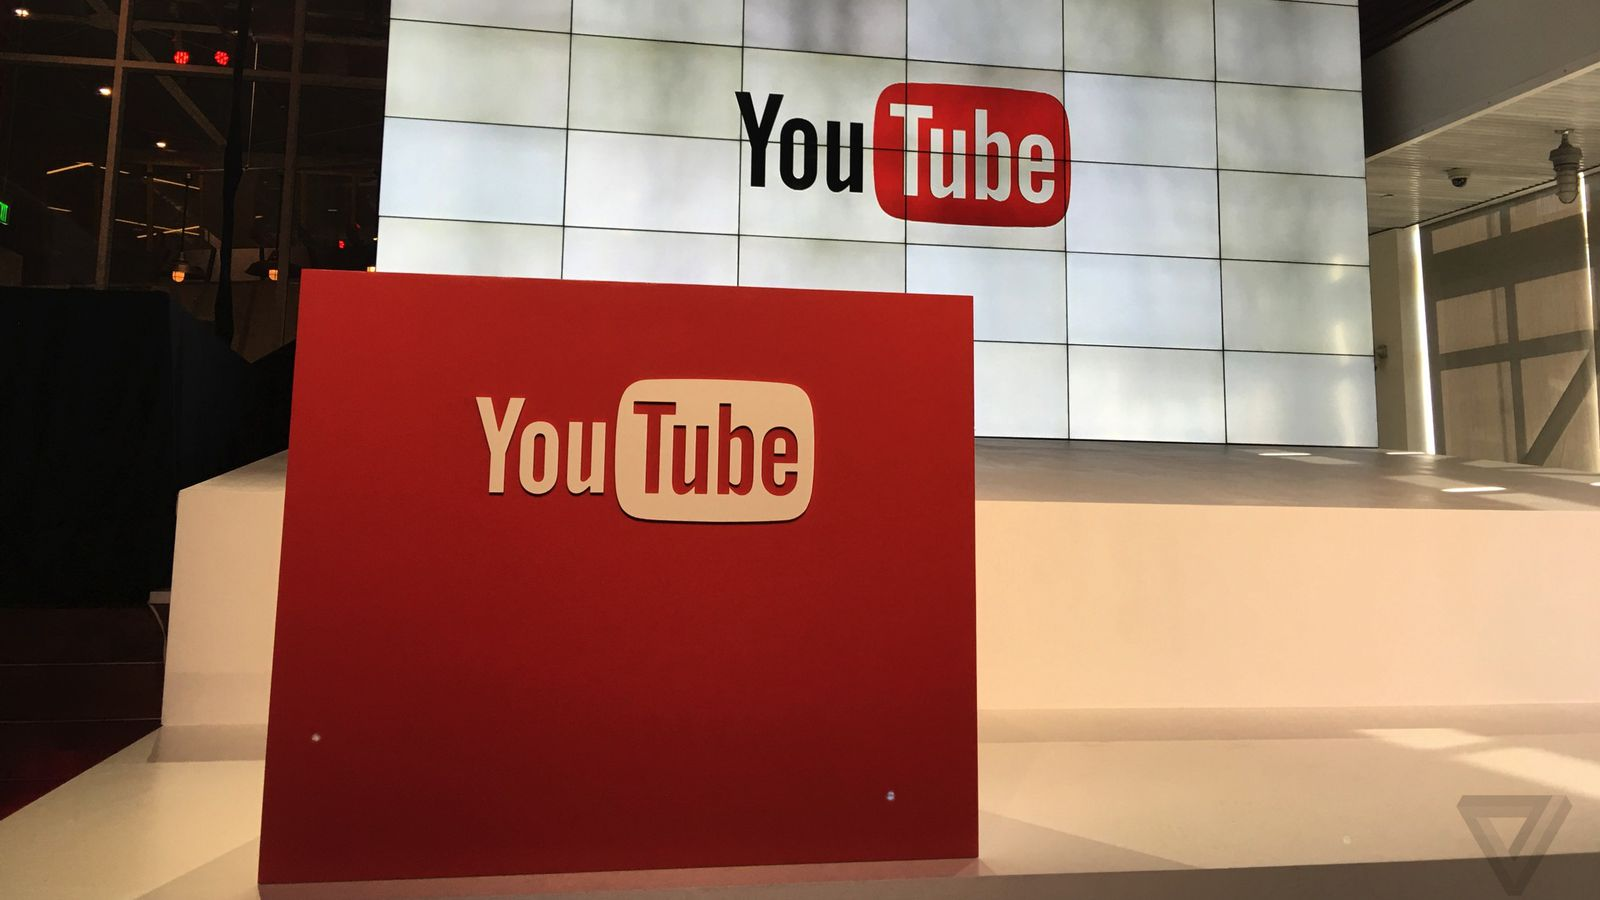 YouTube is getting a Material Design look and feel - The Verge